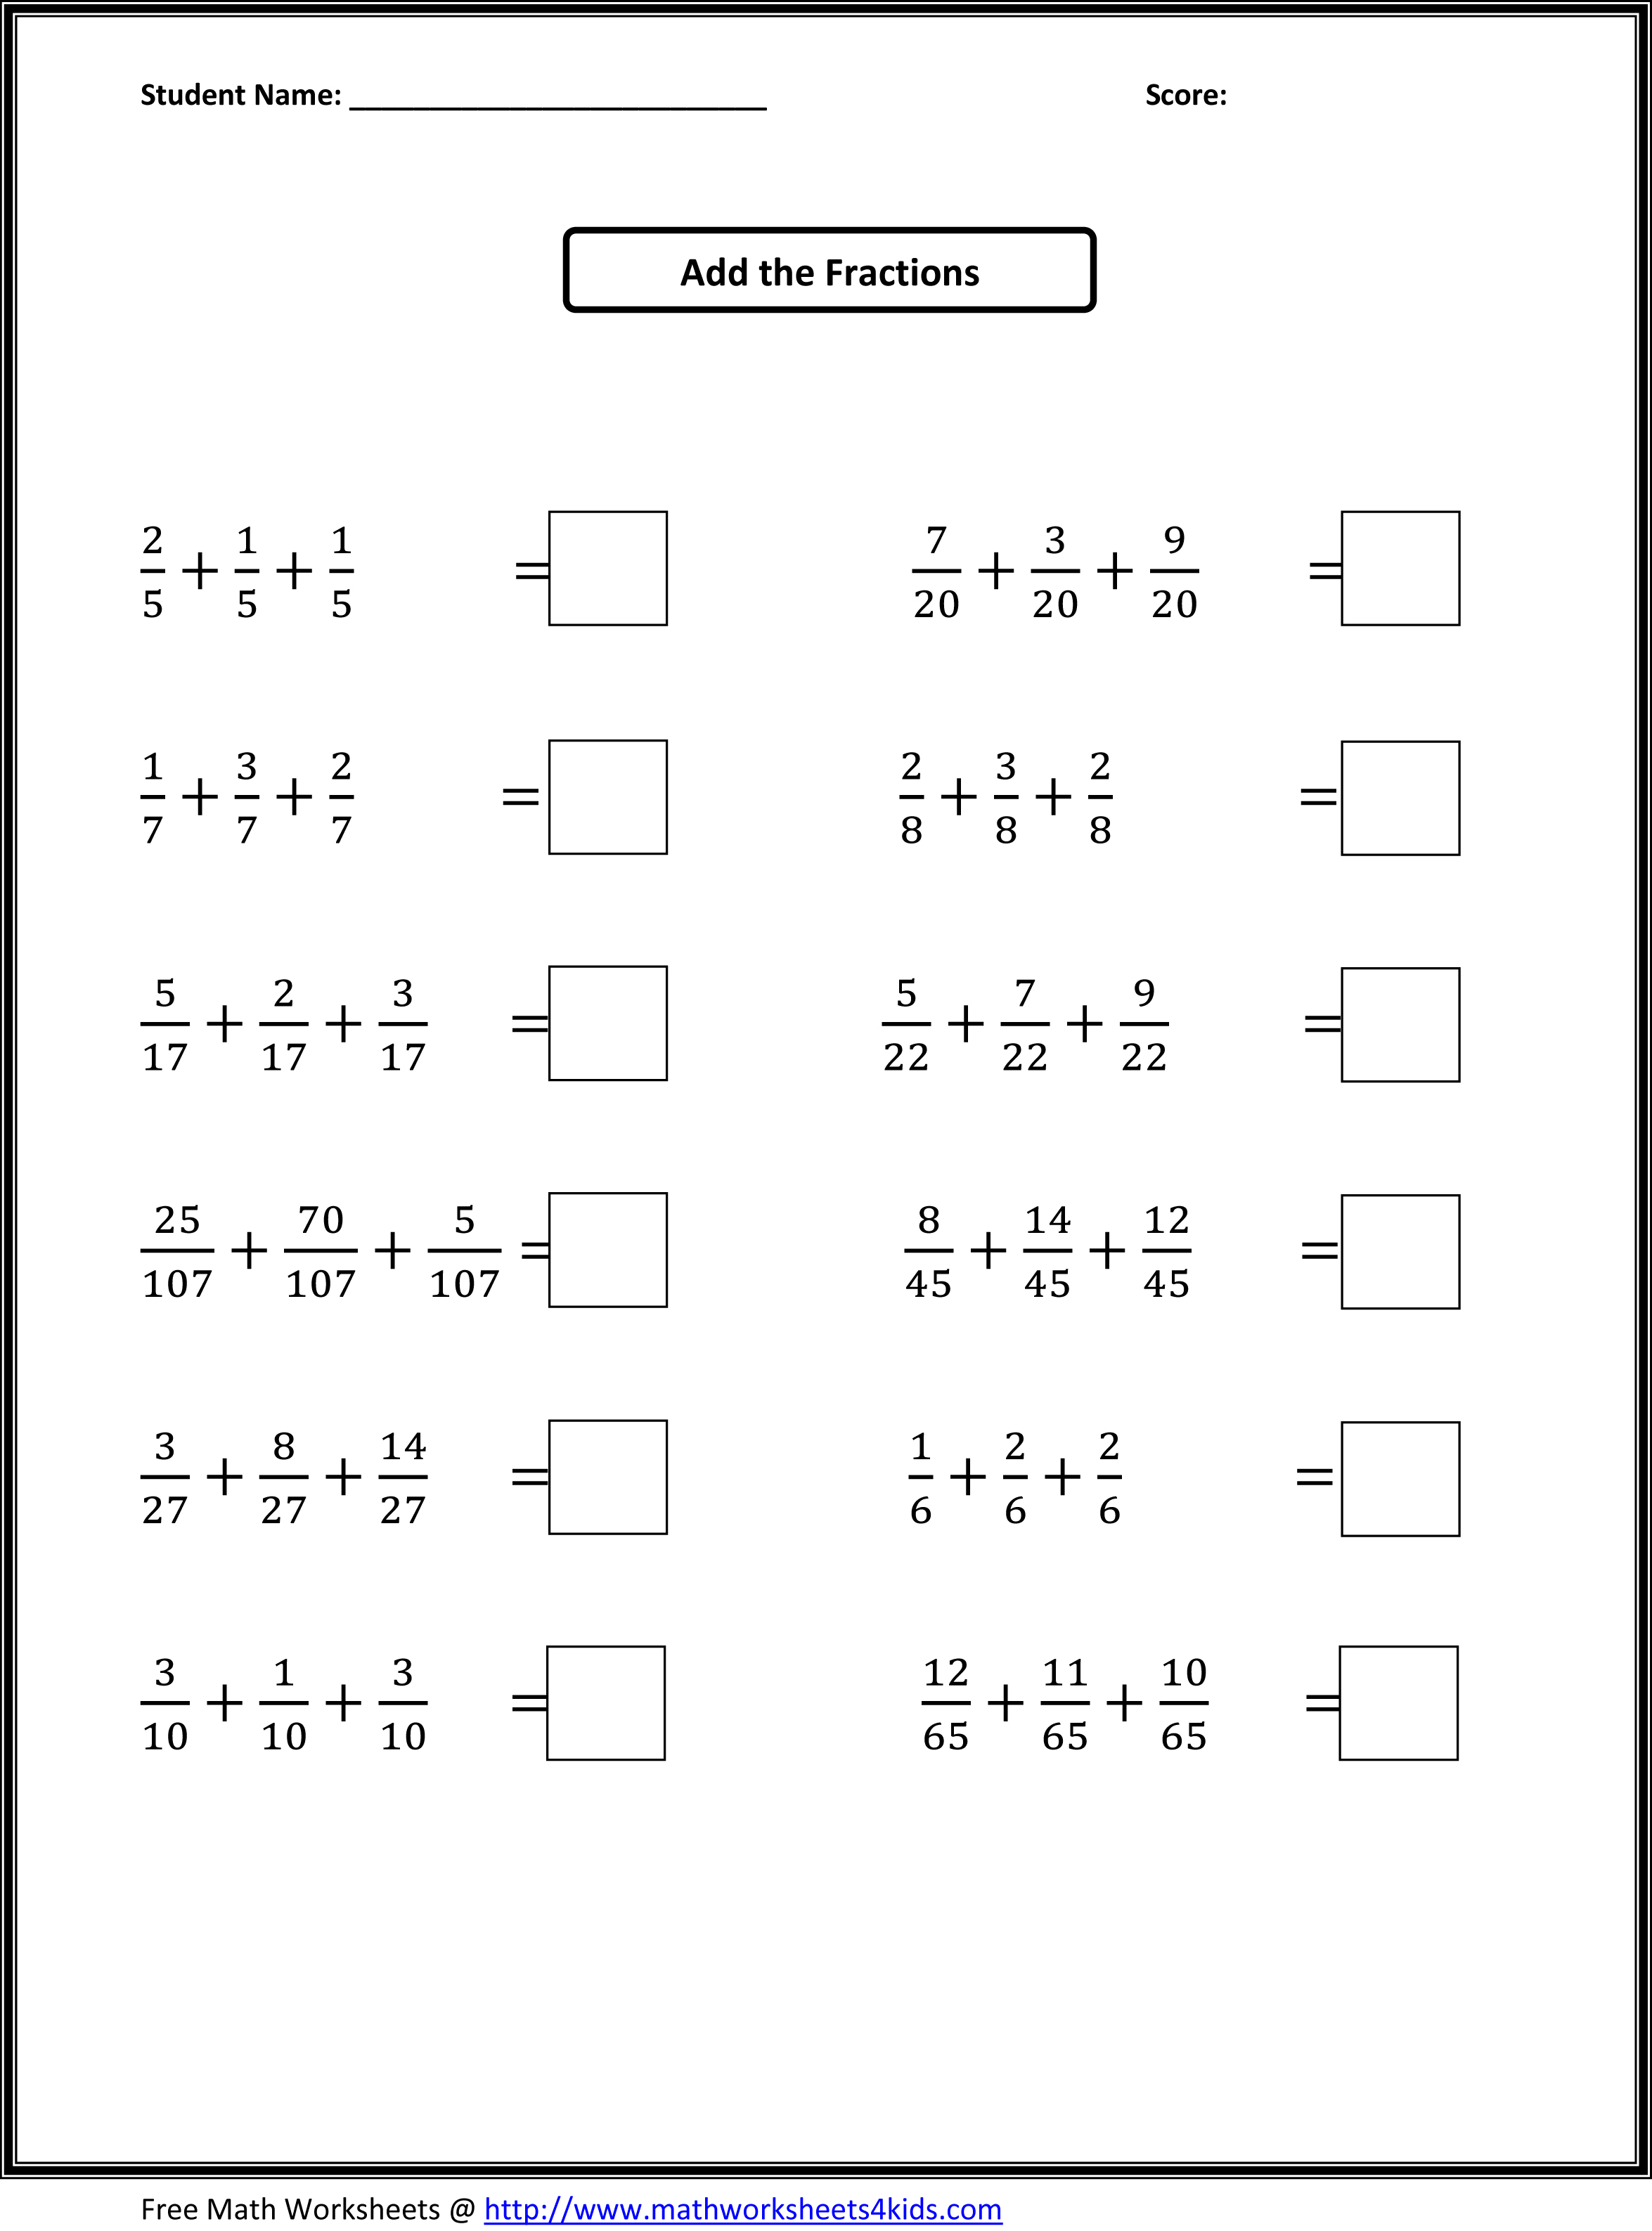 Fraction Worksheets 4th Grade